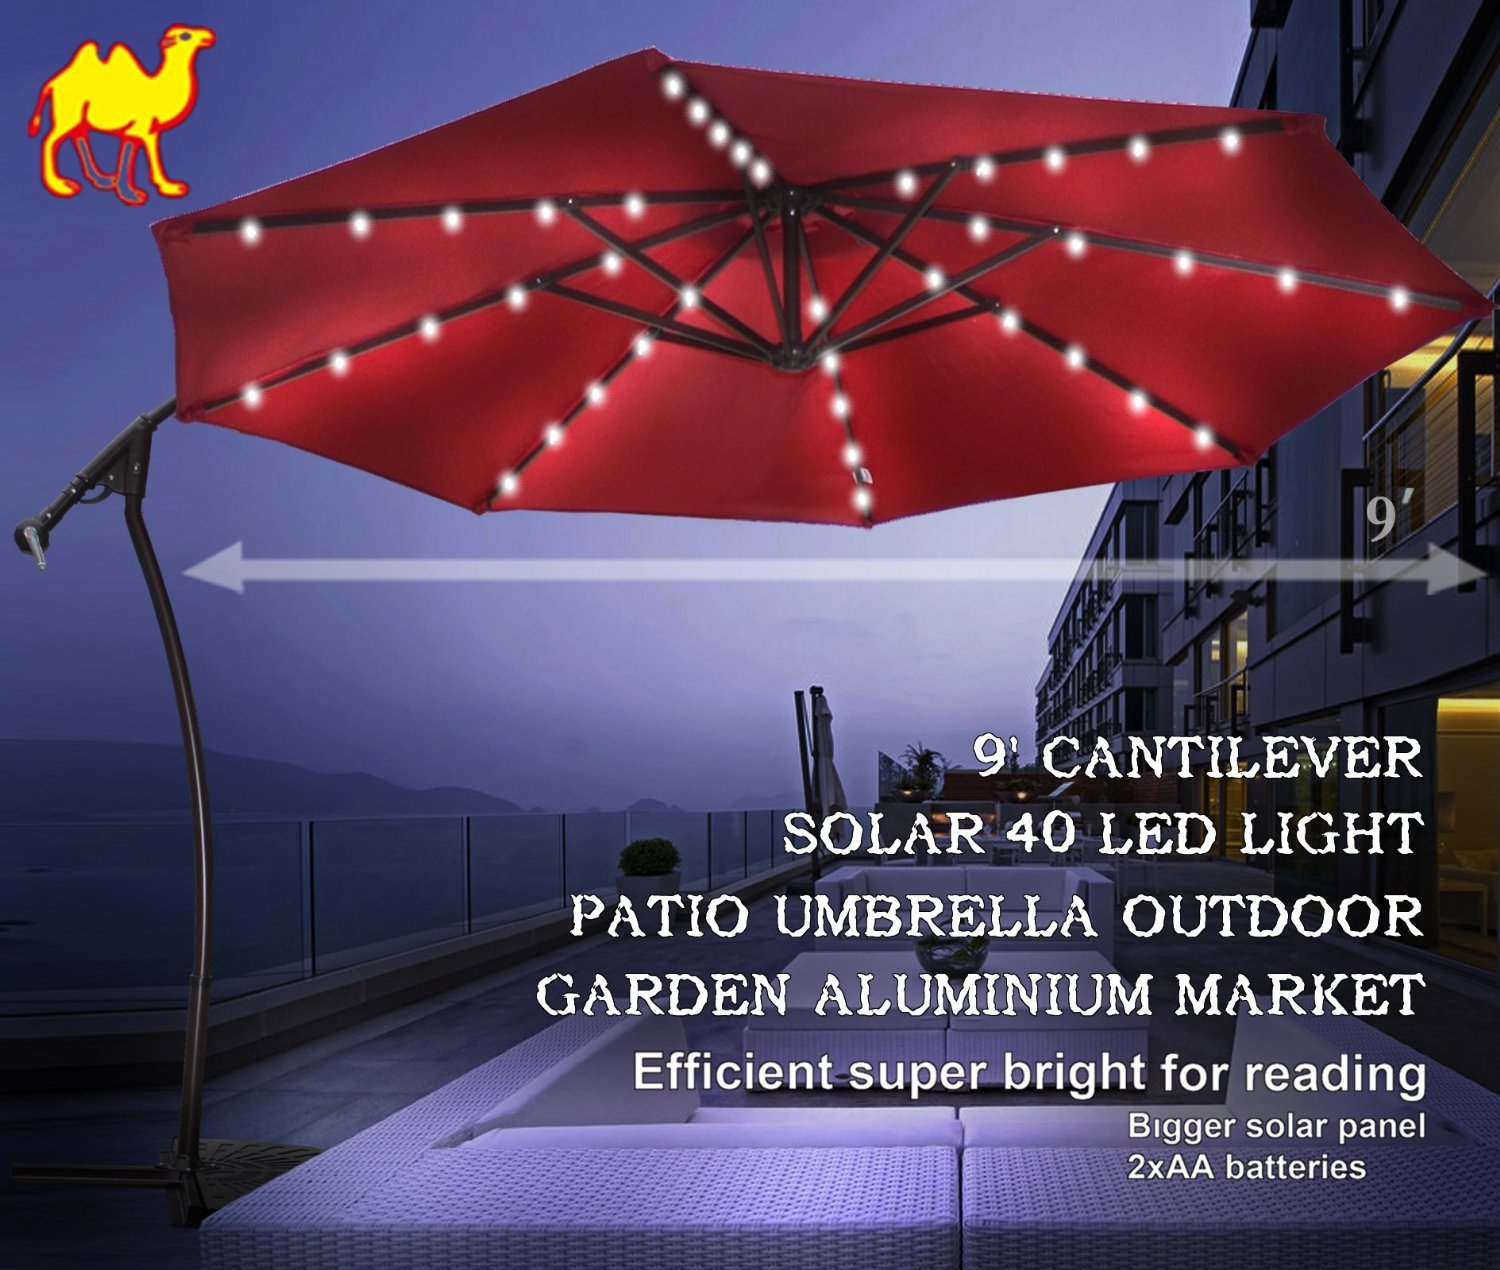 STRONG CAMEL 9' CANTILEVER SOLAR 40 LED LIGHT PATIO HANGING UMBRELLA OUTDOOR GARDEN ALUMINIUM MARKET-BURGUNDY by 008568770489